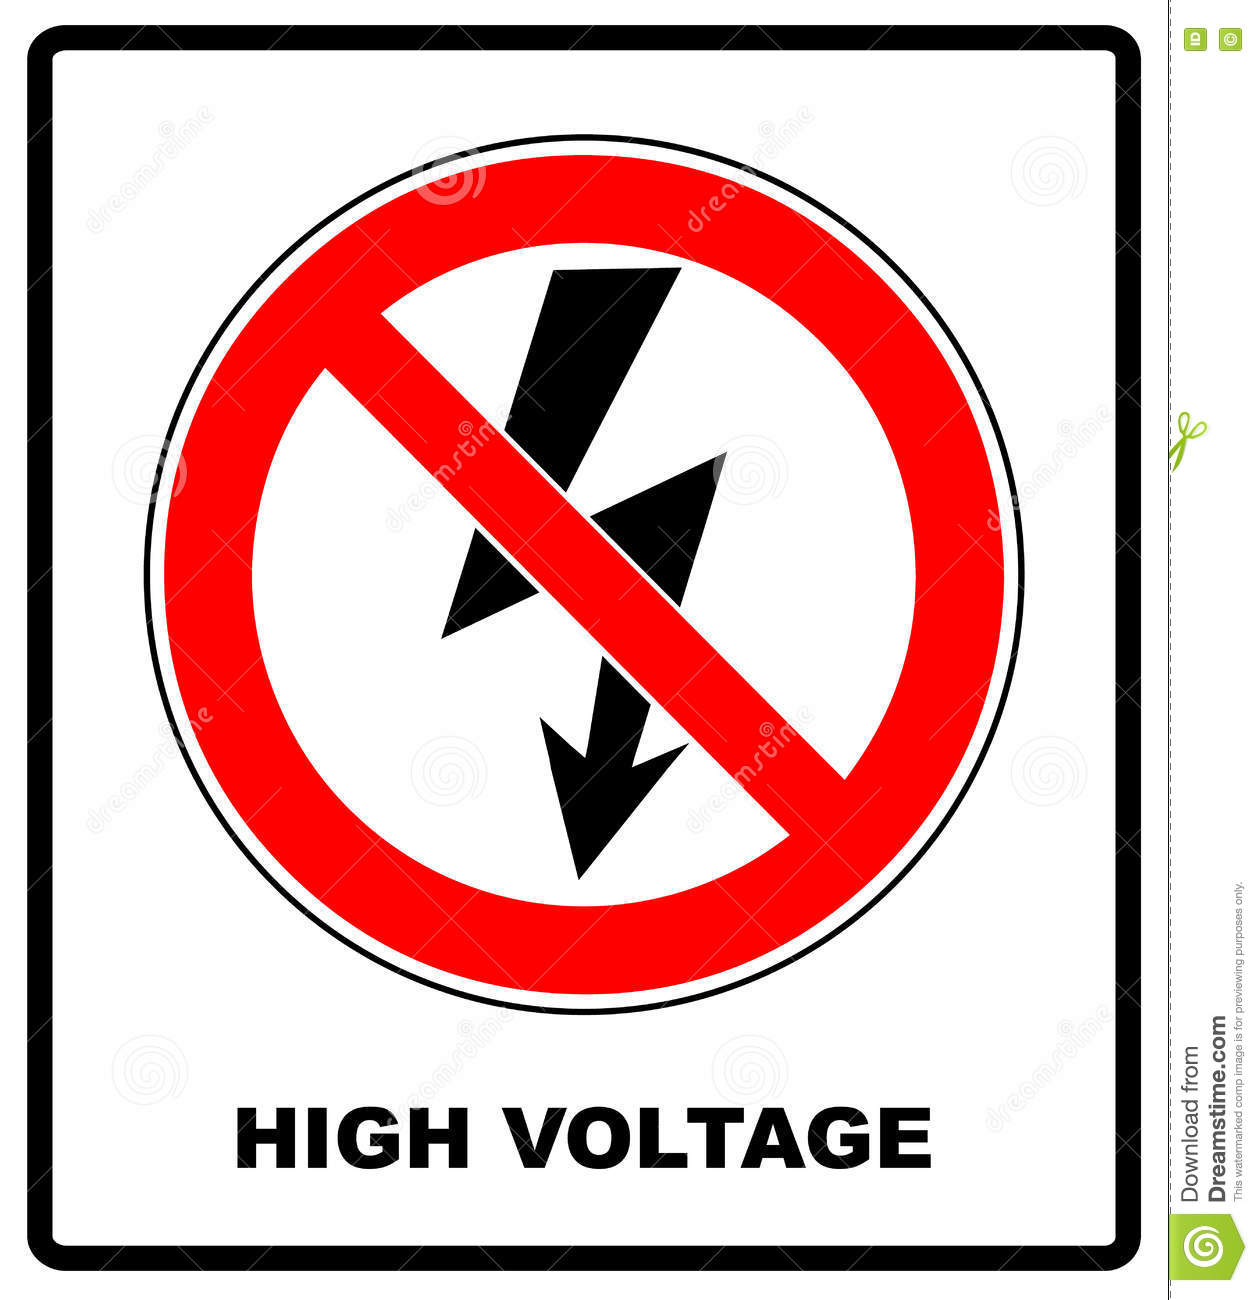 High Voltage Sign Danger Symbol Black Arrow Isolated In Yellow